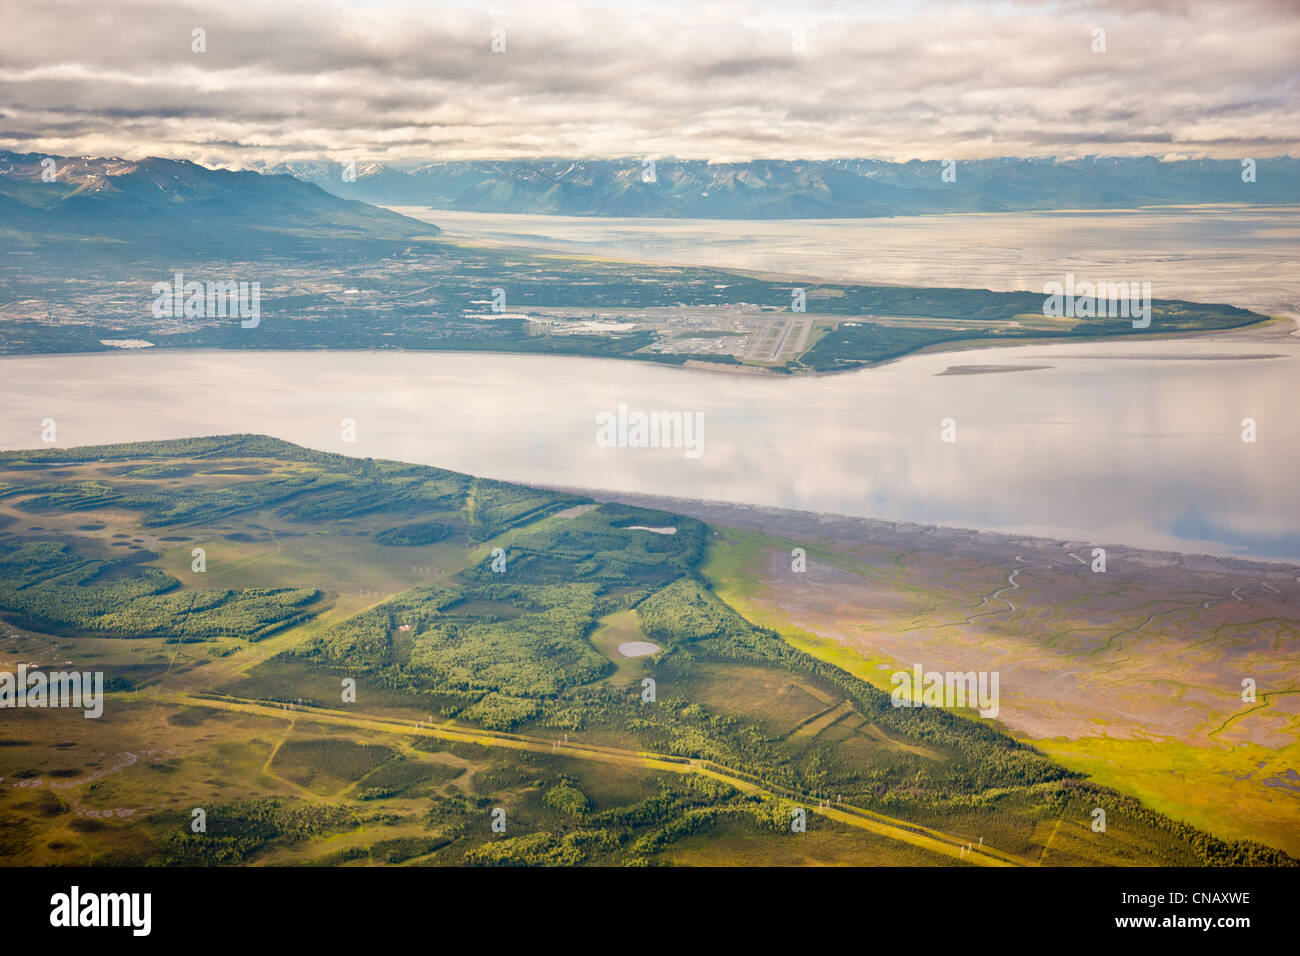 Aerial view of Knik Arm and the Anchorage bowl from the above the Susitna Flats State Game Refuge, Southcentral - Stock Image